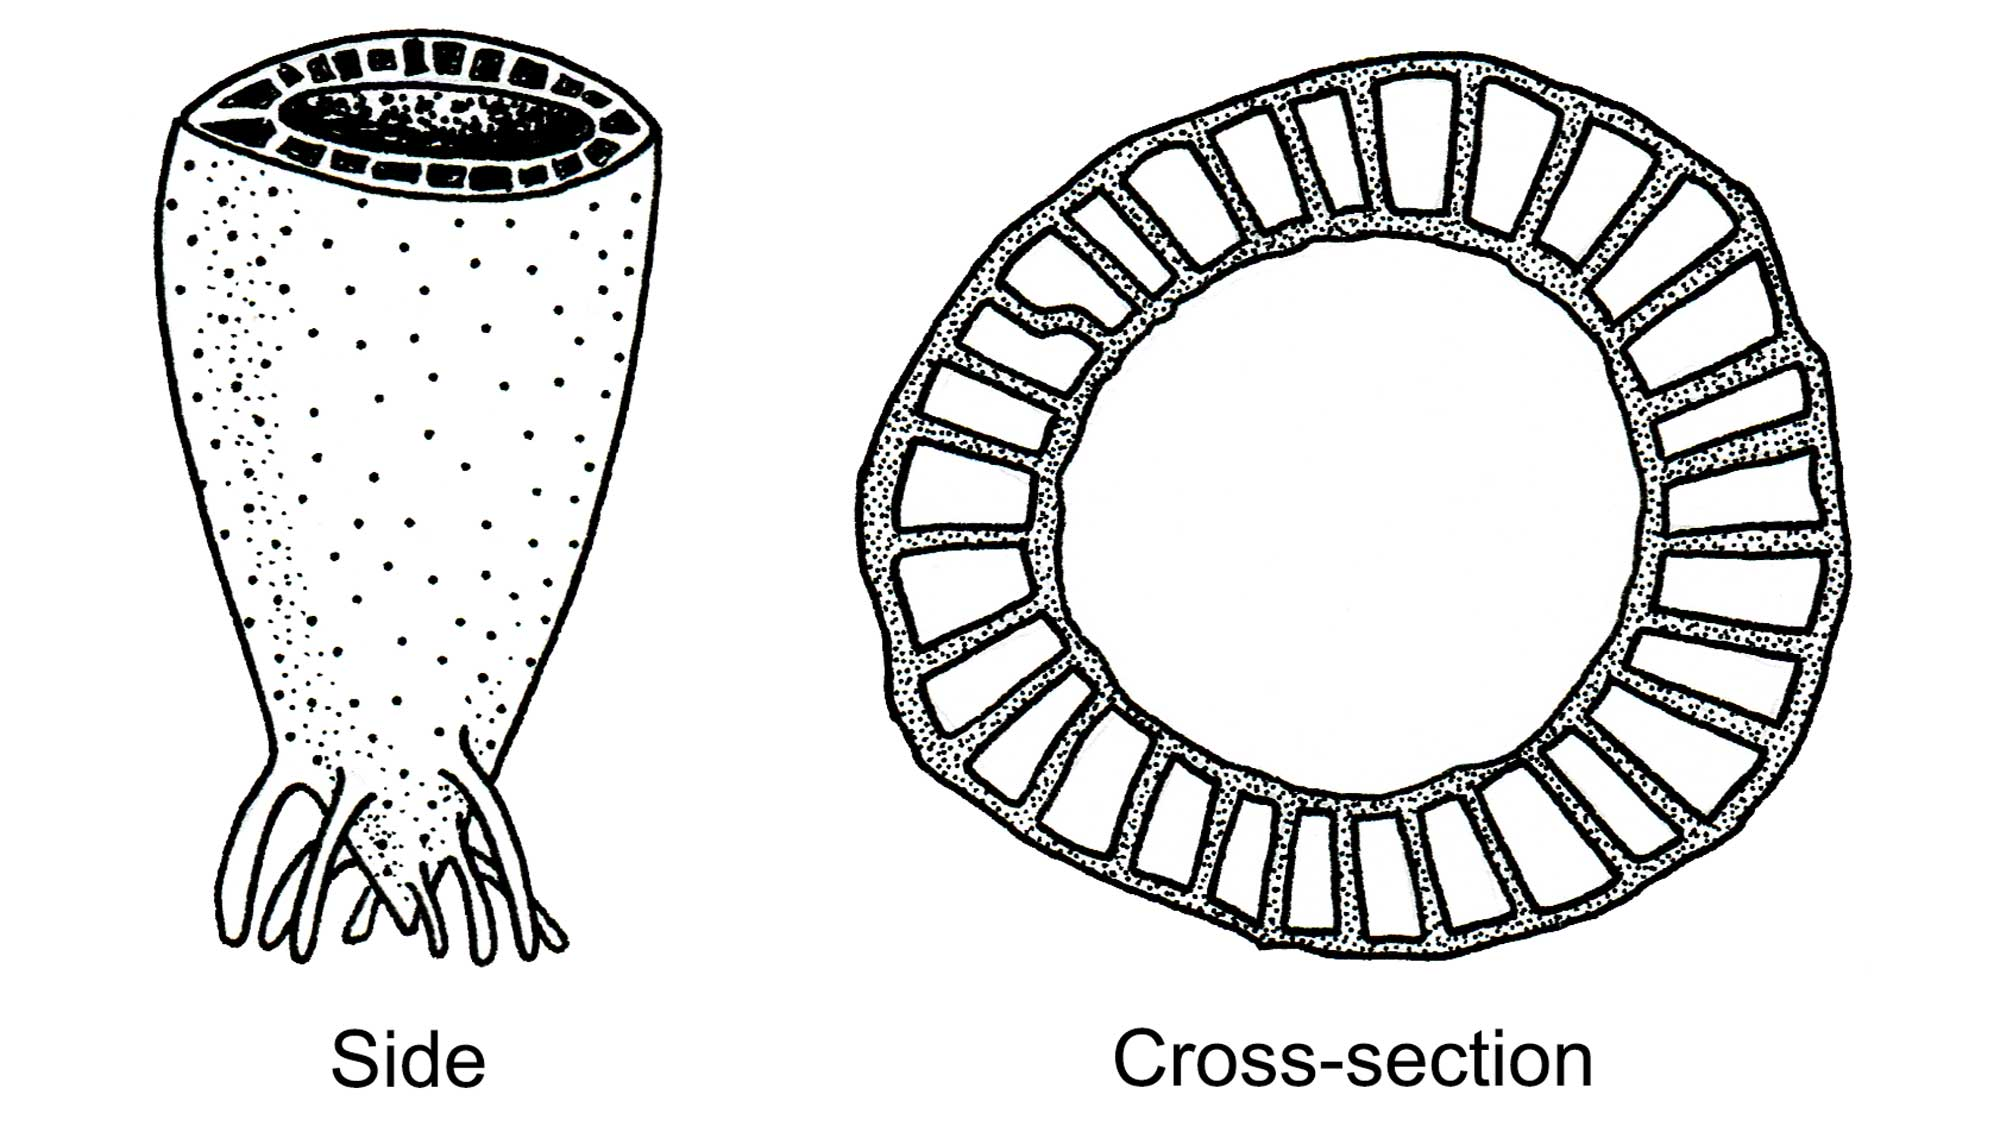 Drawings of archaeocyathans.